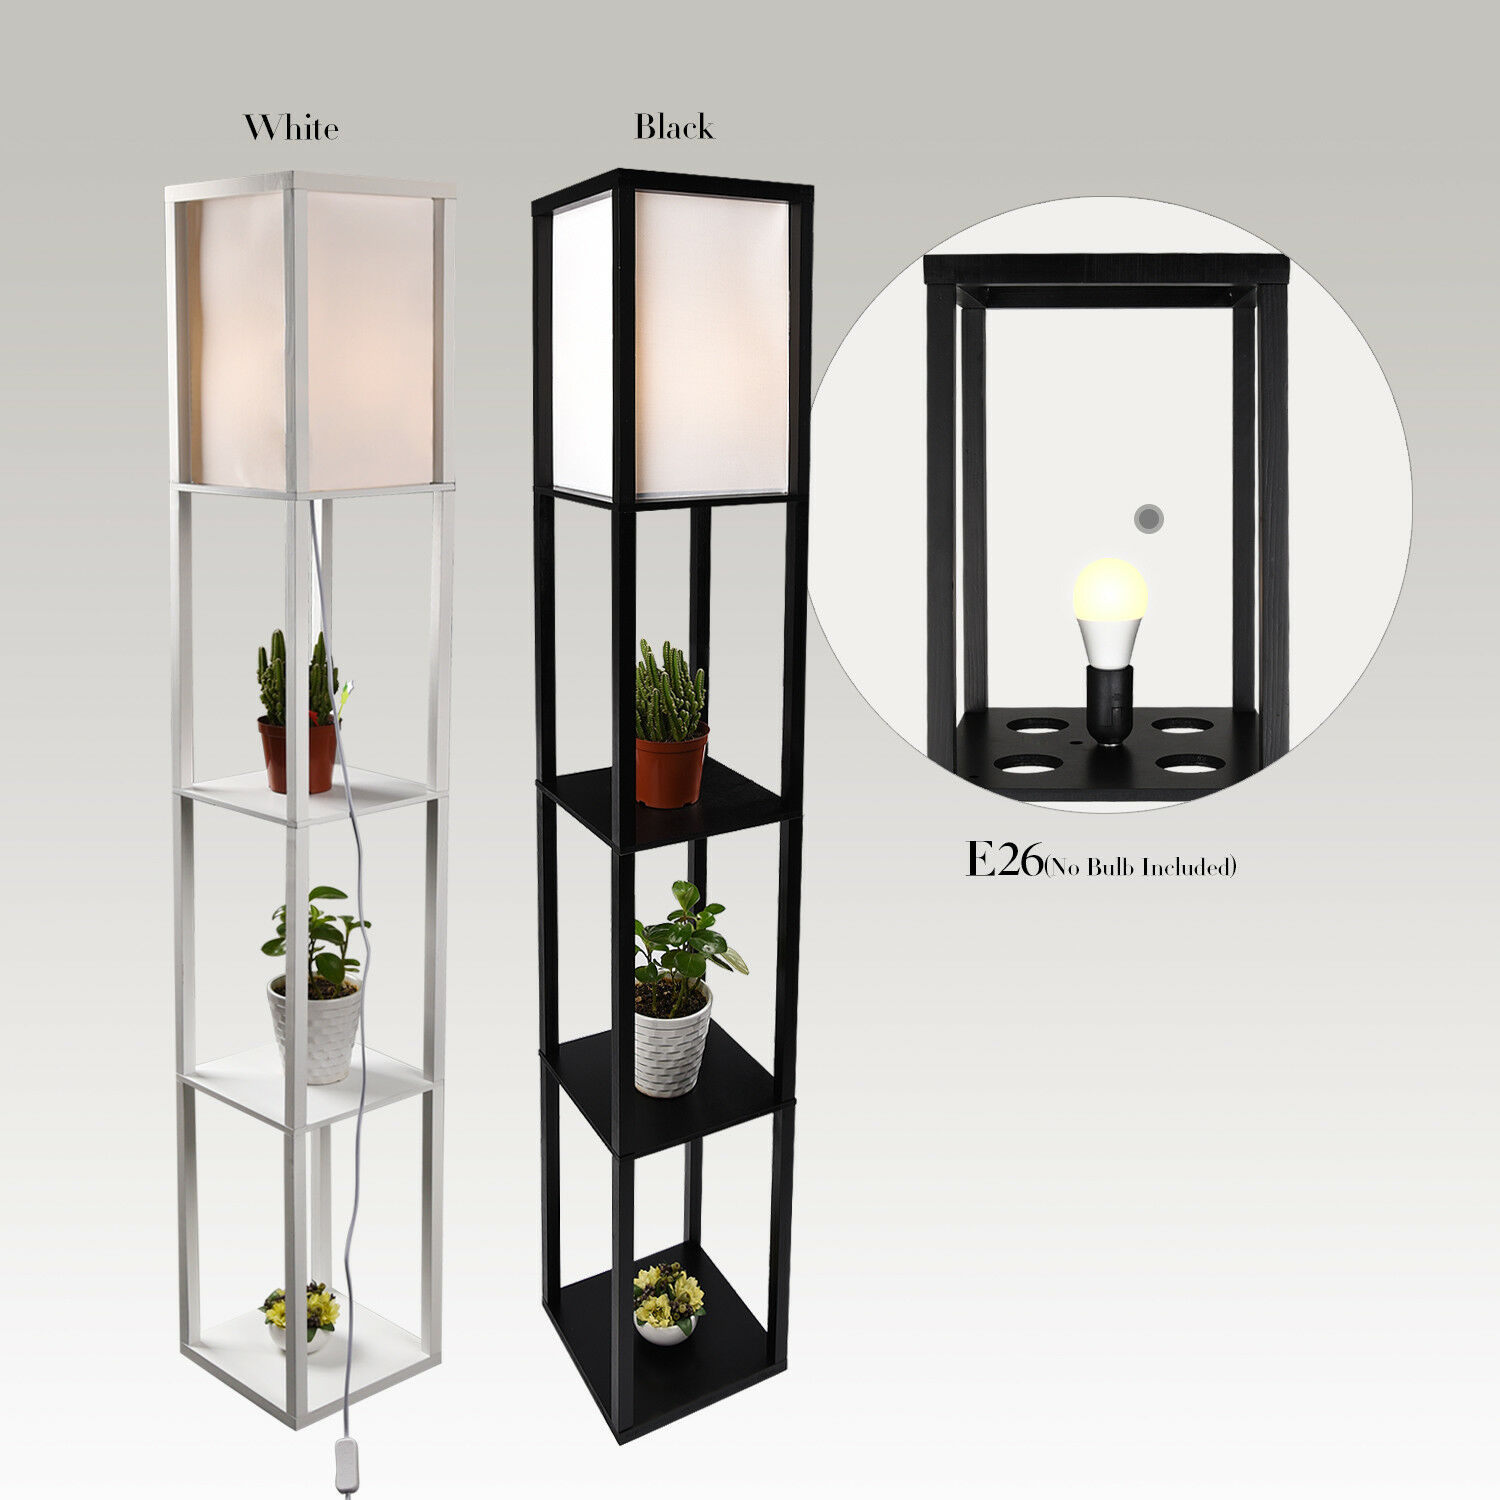 LED Floor Lamp Storage Shelf Standing Wood Light Adjustable